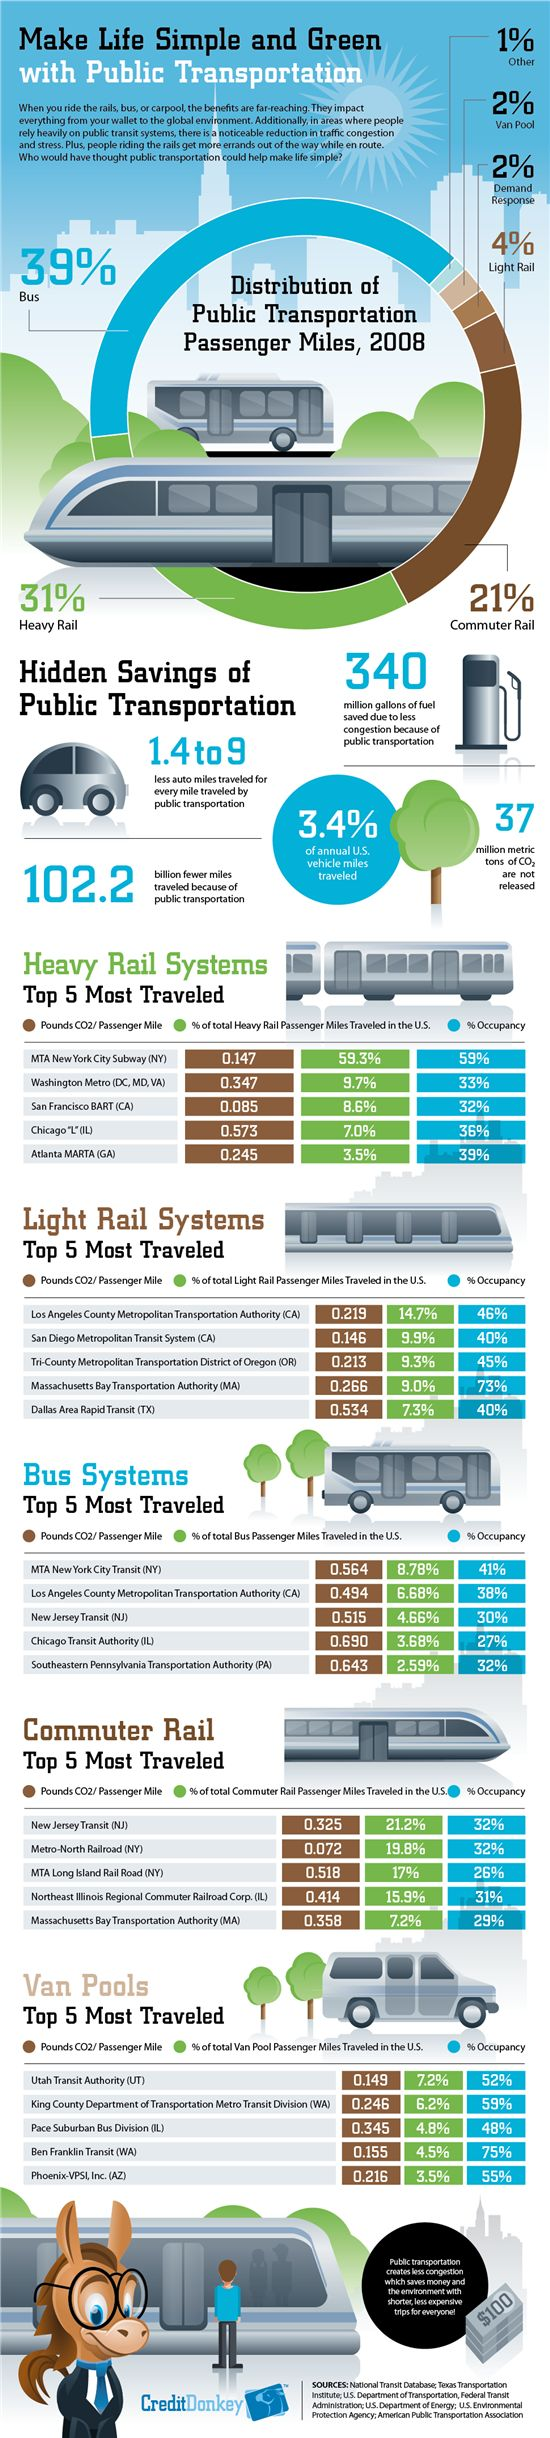 Public-Transportation-Is-Green-infographic